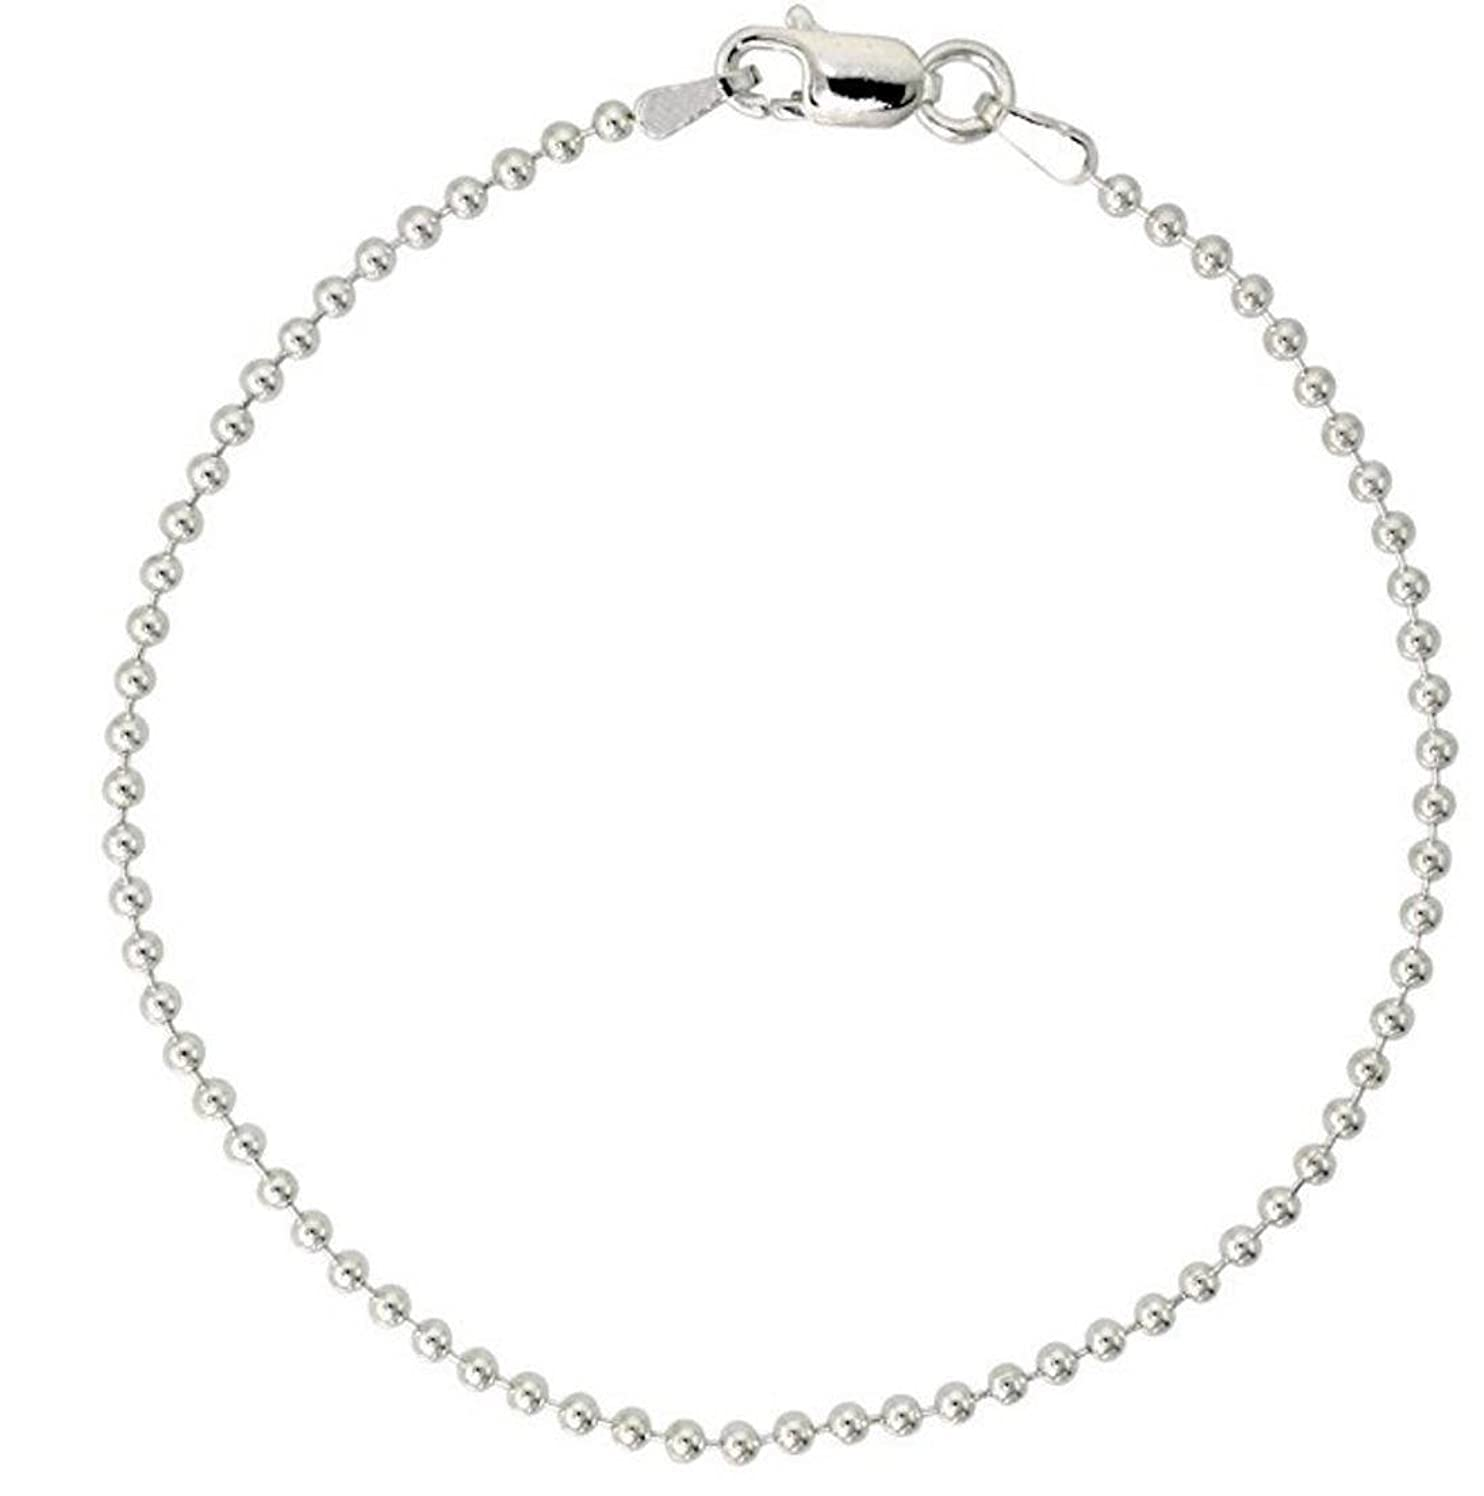 Sterling Silver Bracelet Pallini Bead Ball 7 inch Dainty Cute Chain for Women Girls Anniversary Birthday Mother's Gifts SB1-B